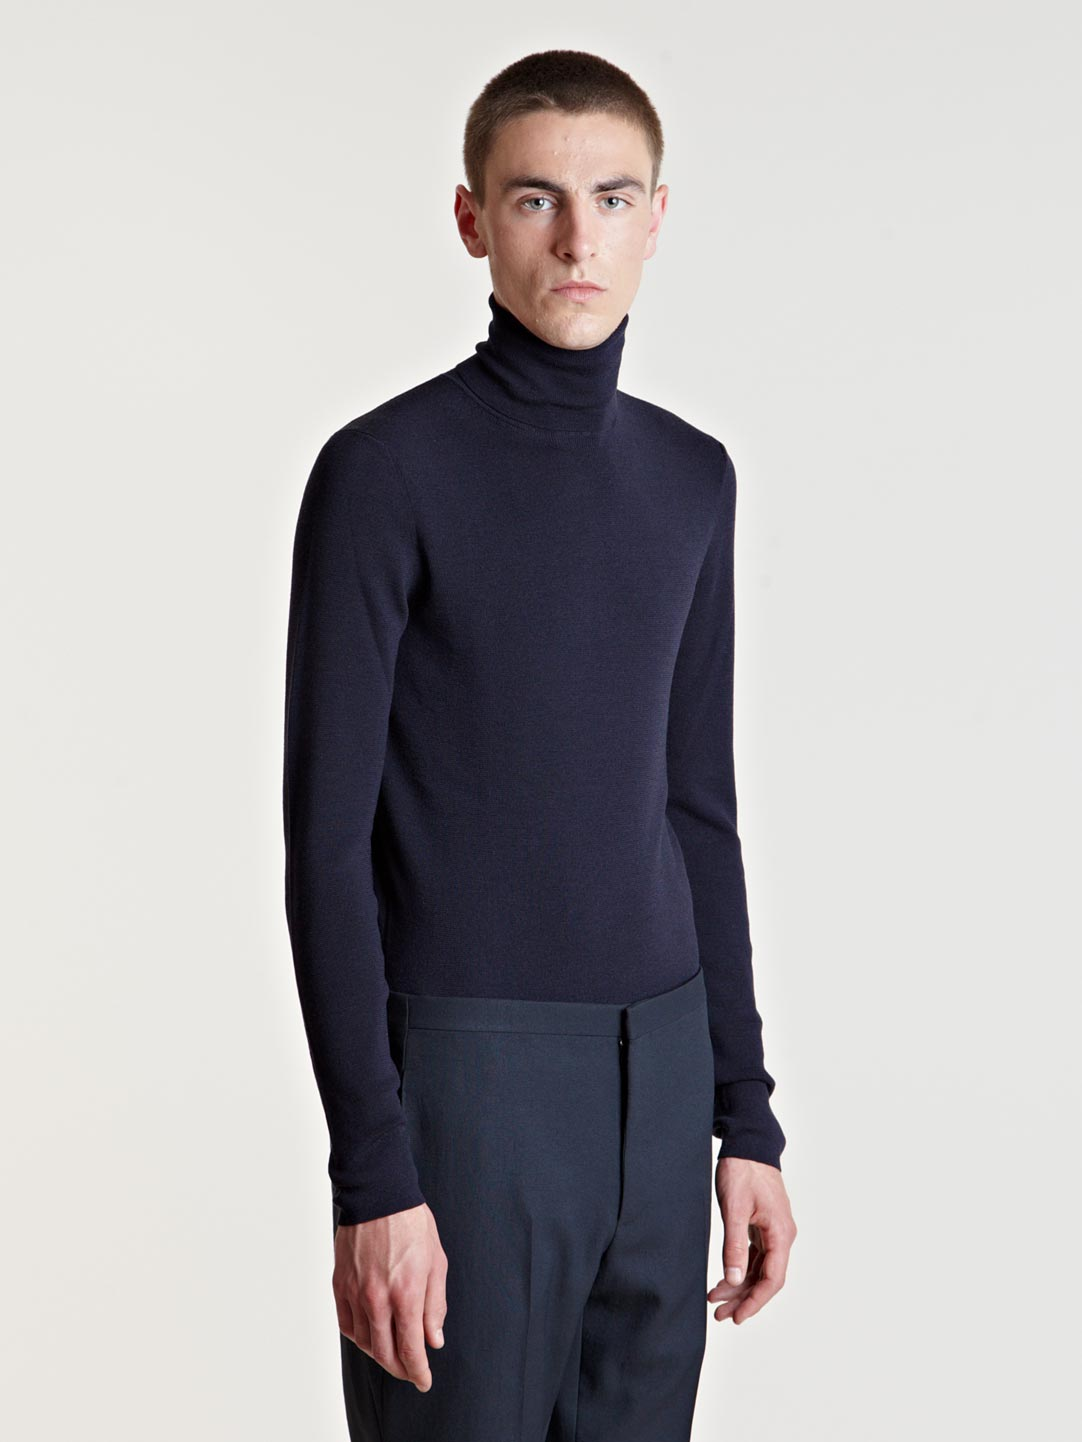 Lanvin Mens Turtle Neck Sweater In Blue For Men Lyst